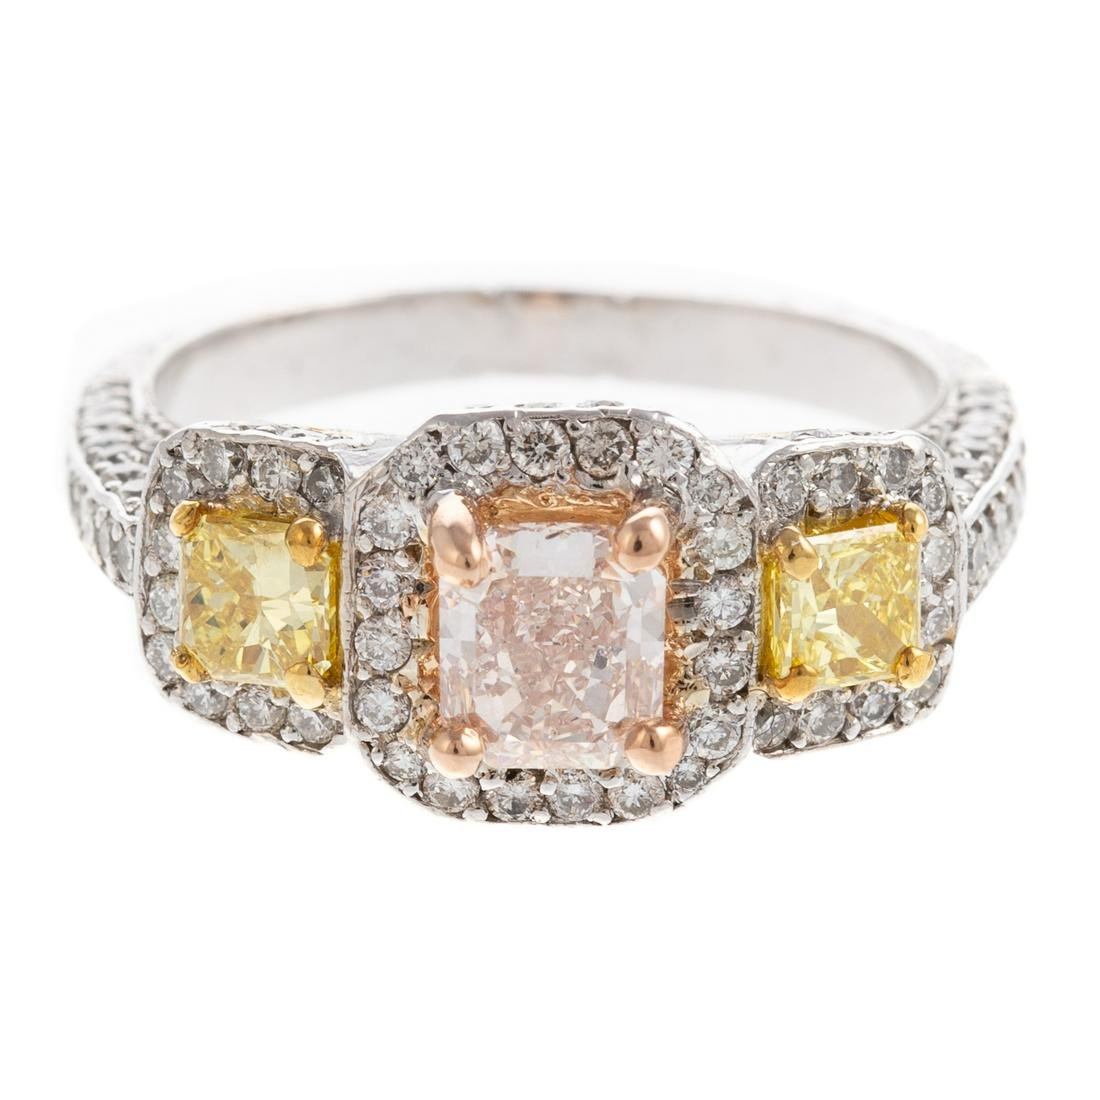 A GIA Pink & Yellow Diamond Ring in Platinum